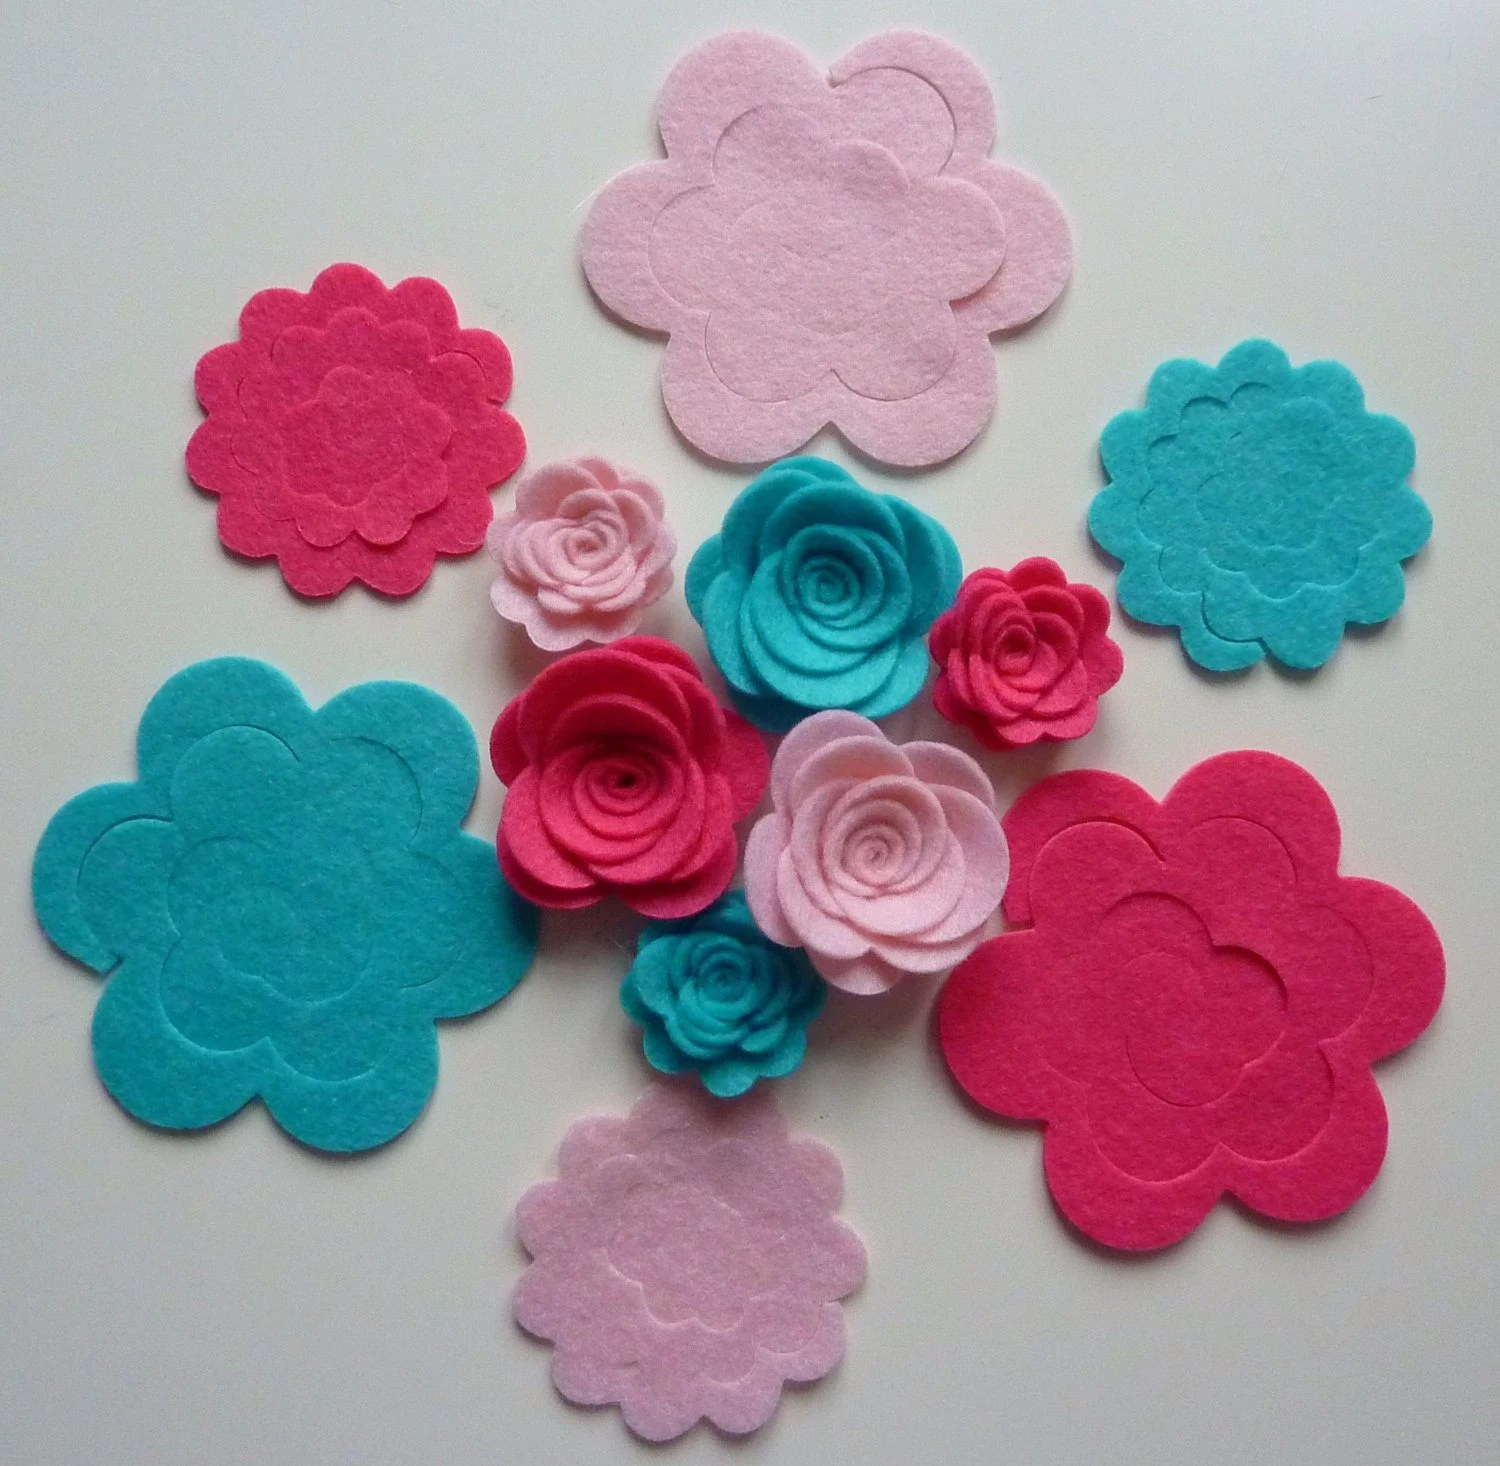 Diy Make Your Own Felt 3d Flowers Roses Felt Flower Crown